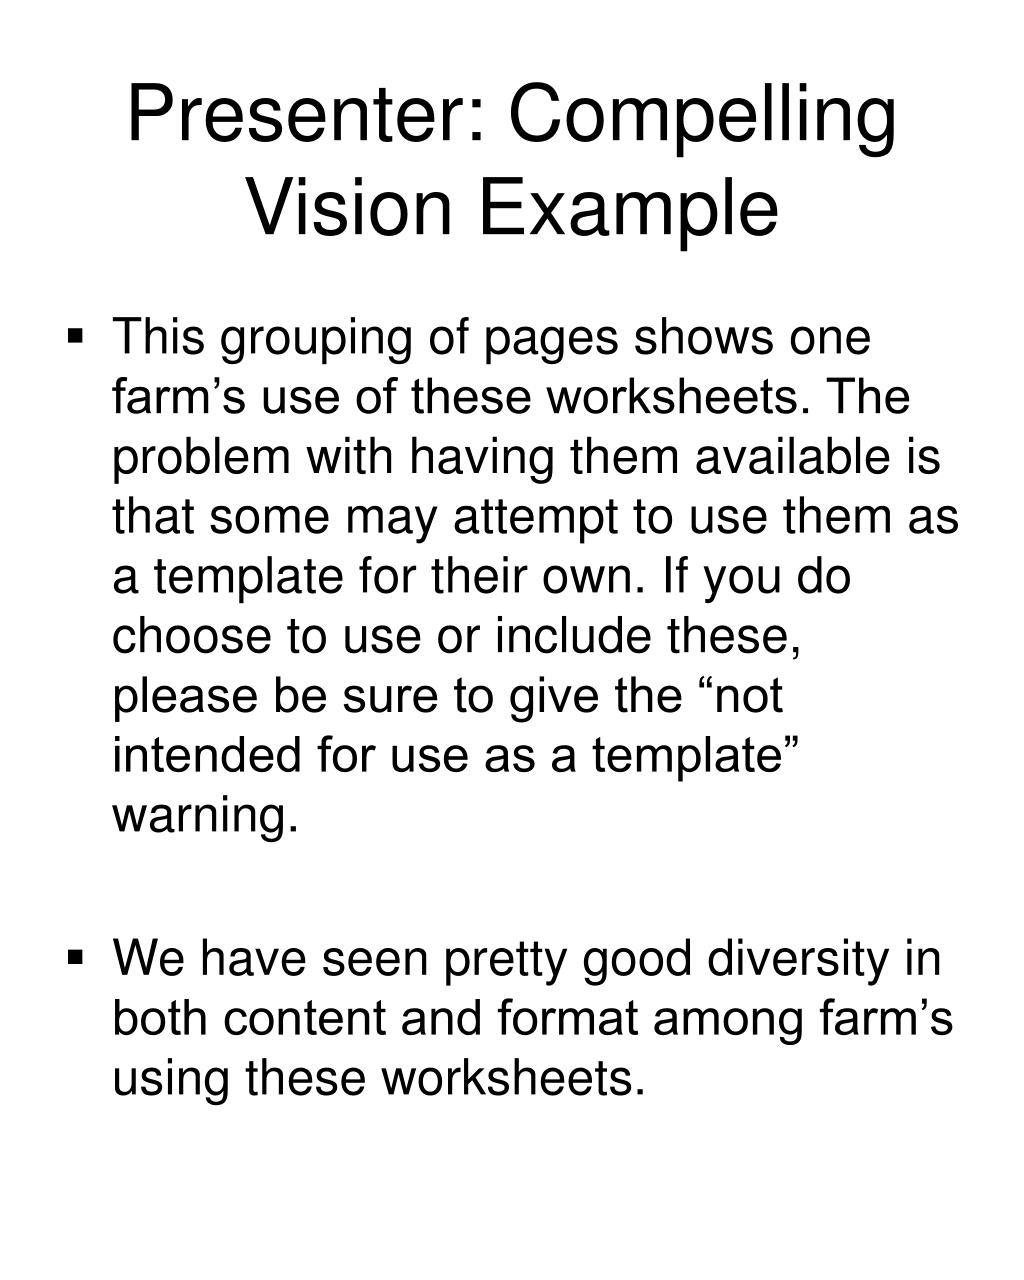 Presenter: Compelling Vision Example